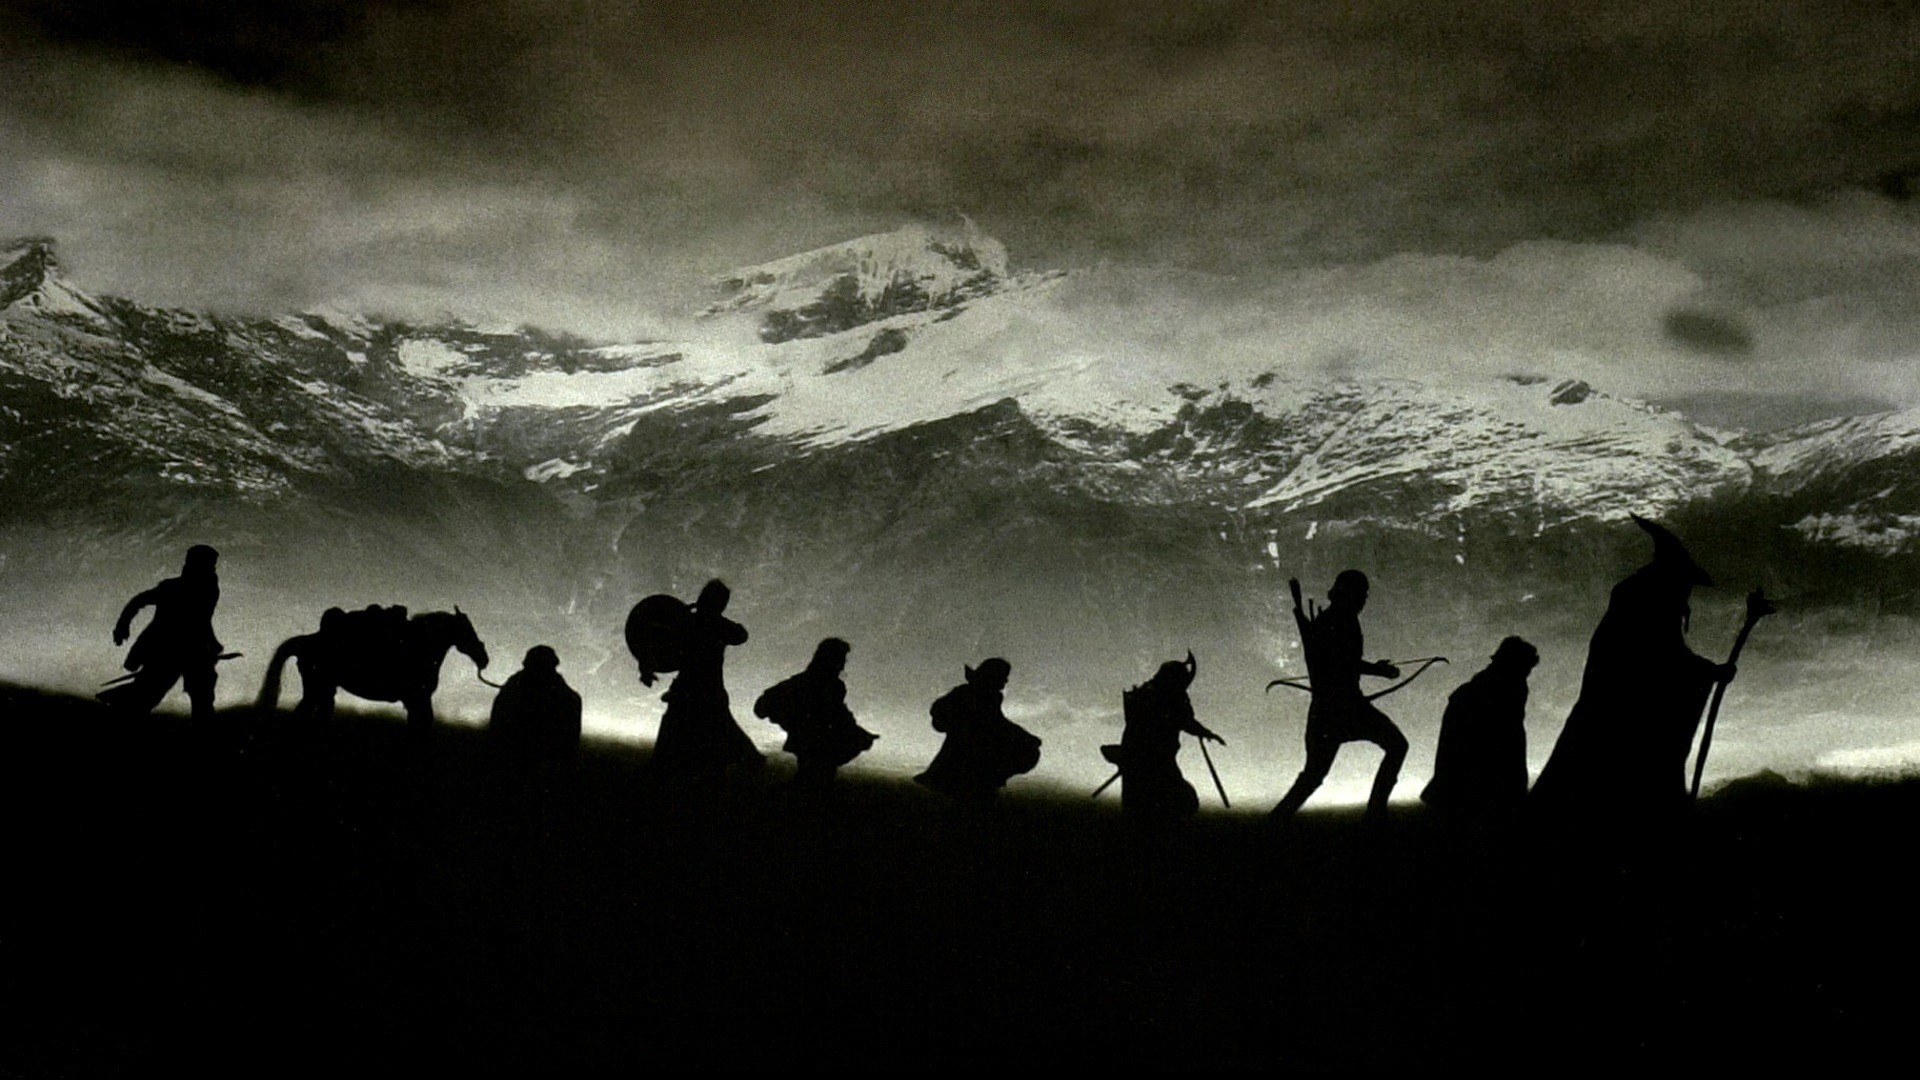 Res: 1920x1080, The Lord of the Rings: The Fellowship of the Ring Wallpapers